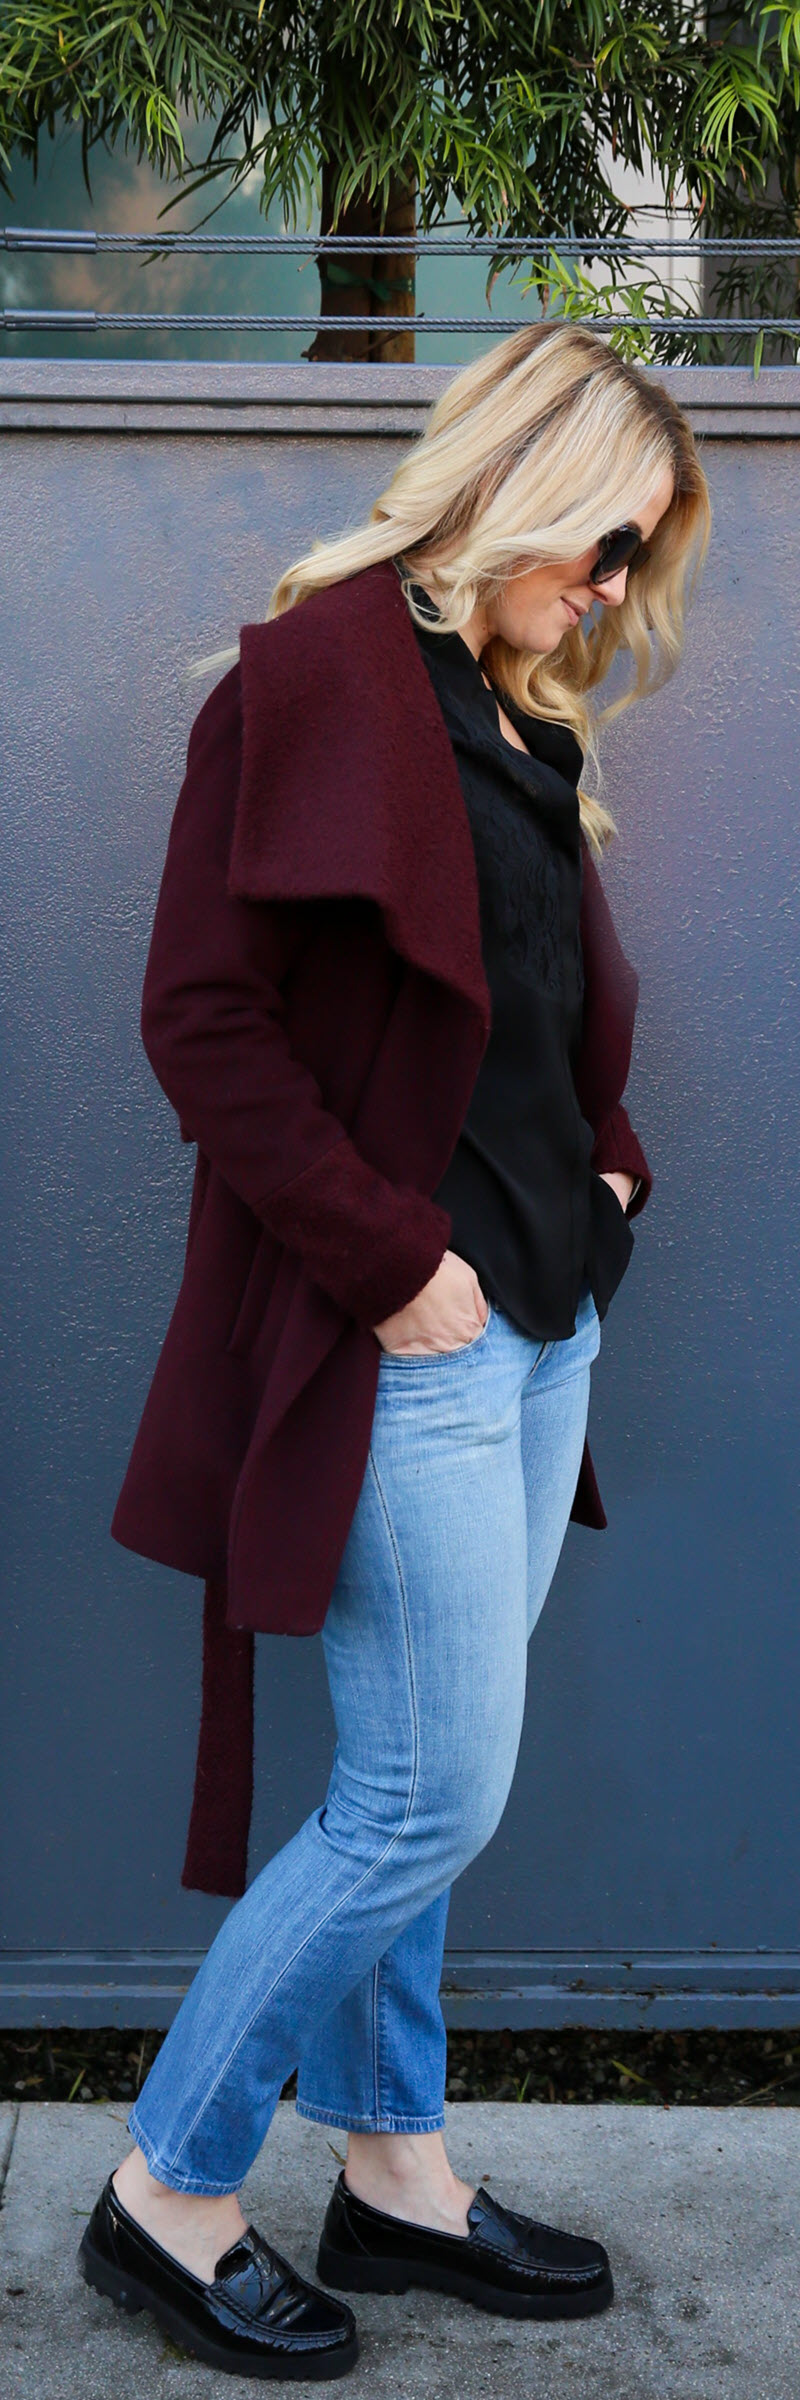 Jean Brands Not to Buy #fashionblog #fashionblogger #denim #jeans #outfitidea #style #womesnfashion #womensstyle #womenover30 #losangeles